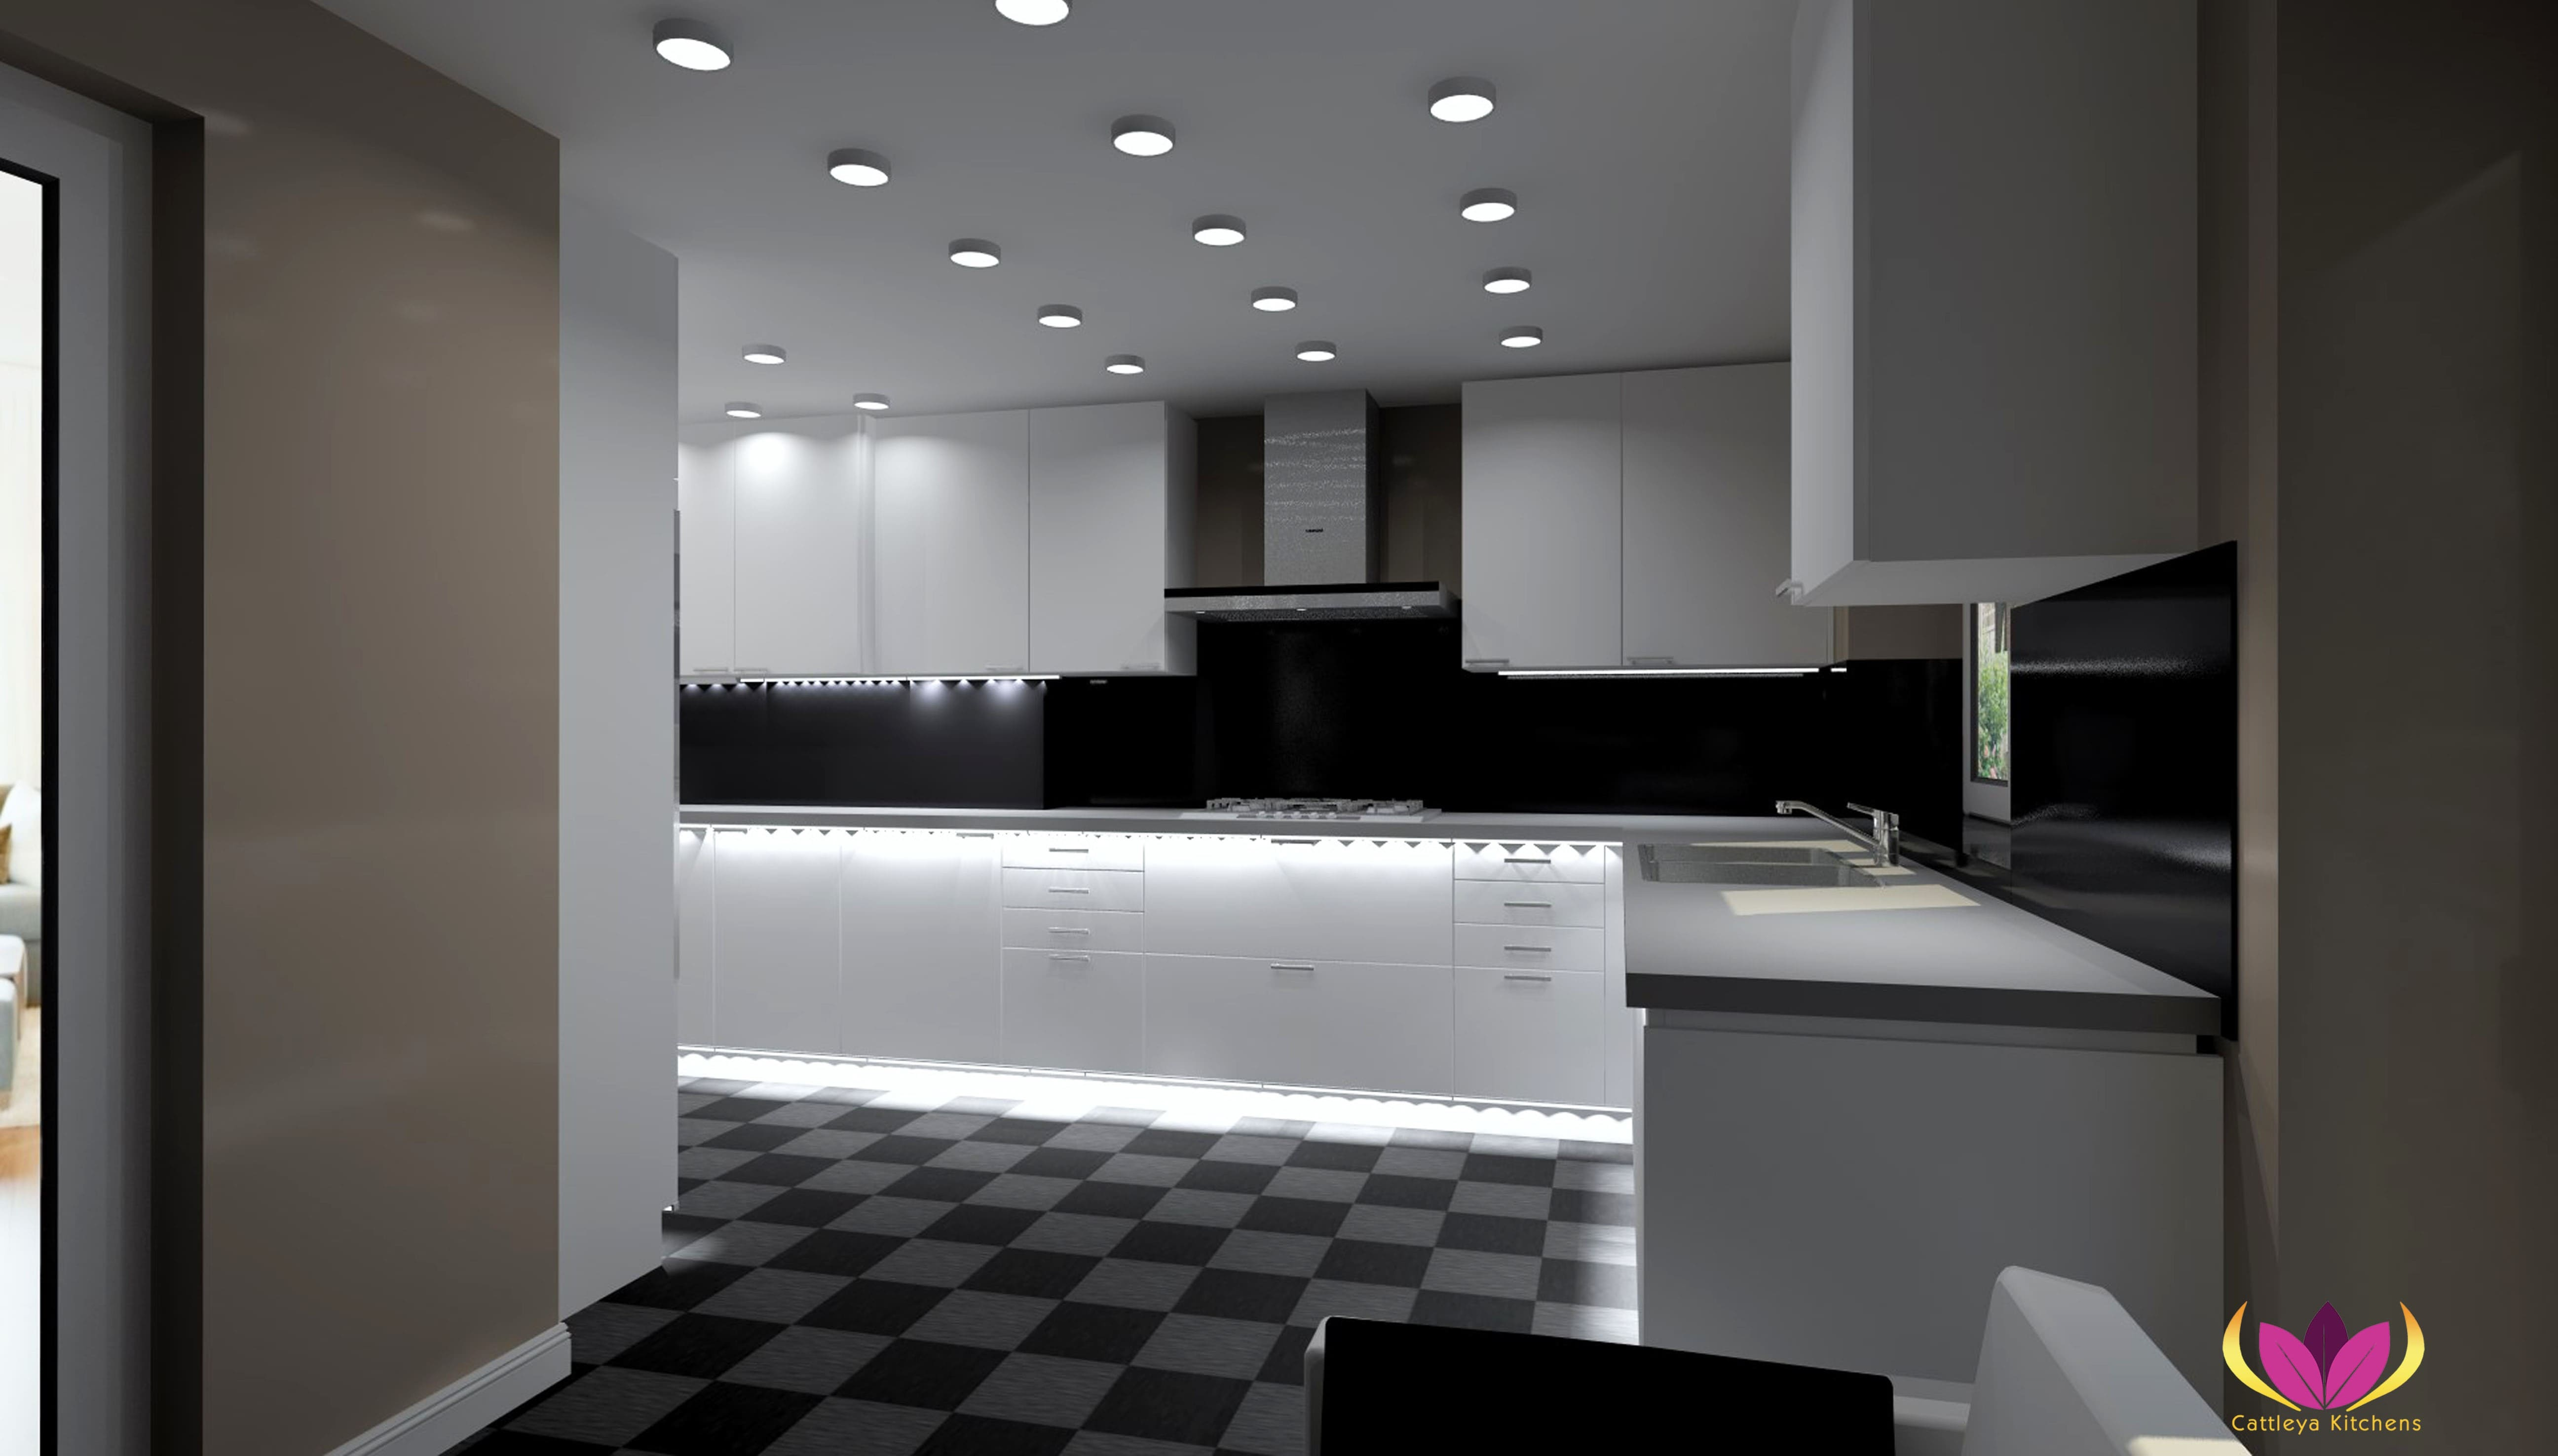 Ealing Finished Kitchen Project Plan